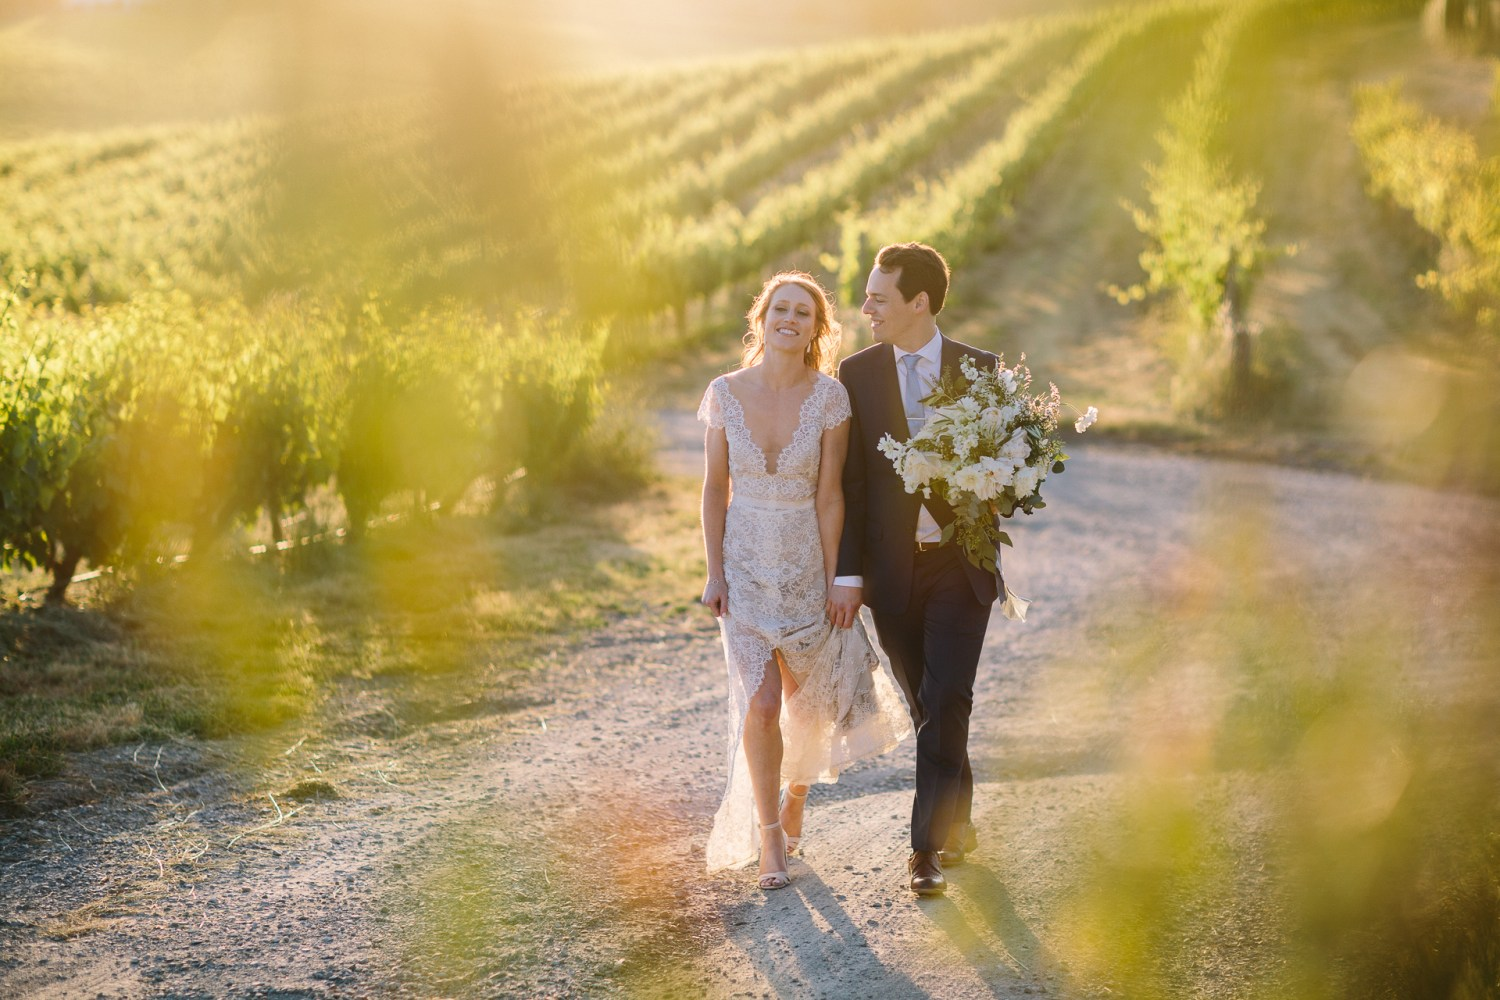 Coriole winery wedding Mclarenvale , bride and groom walking through backlit vines in golden afternoon light